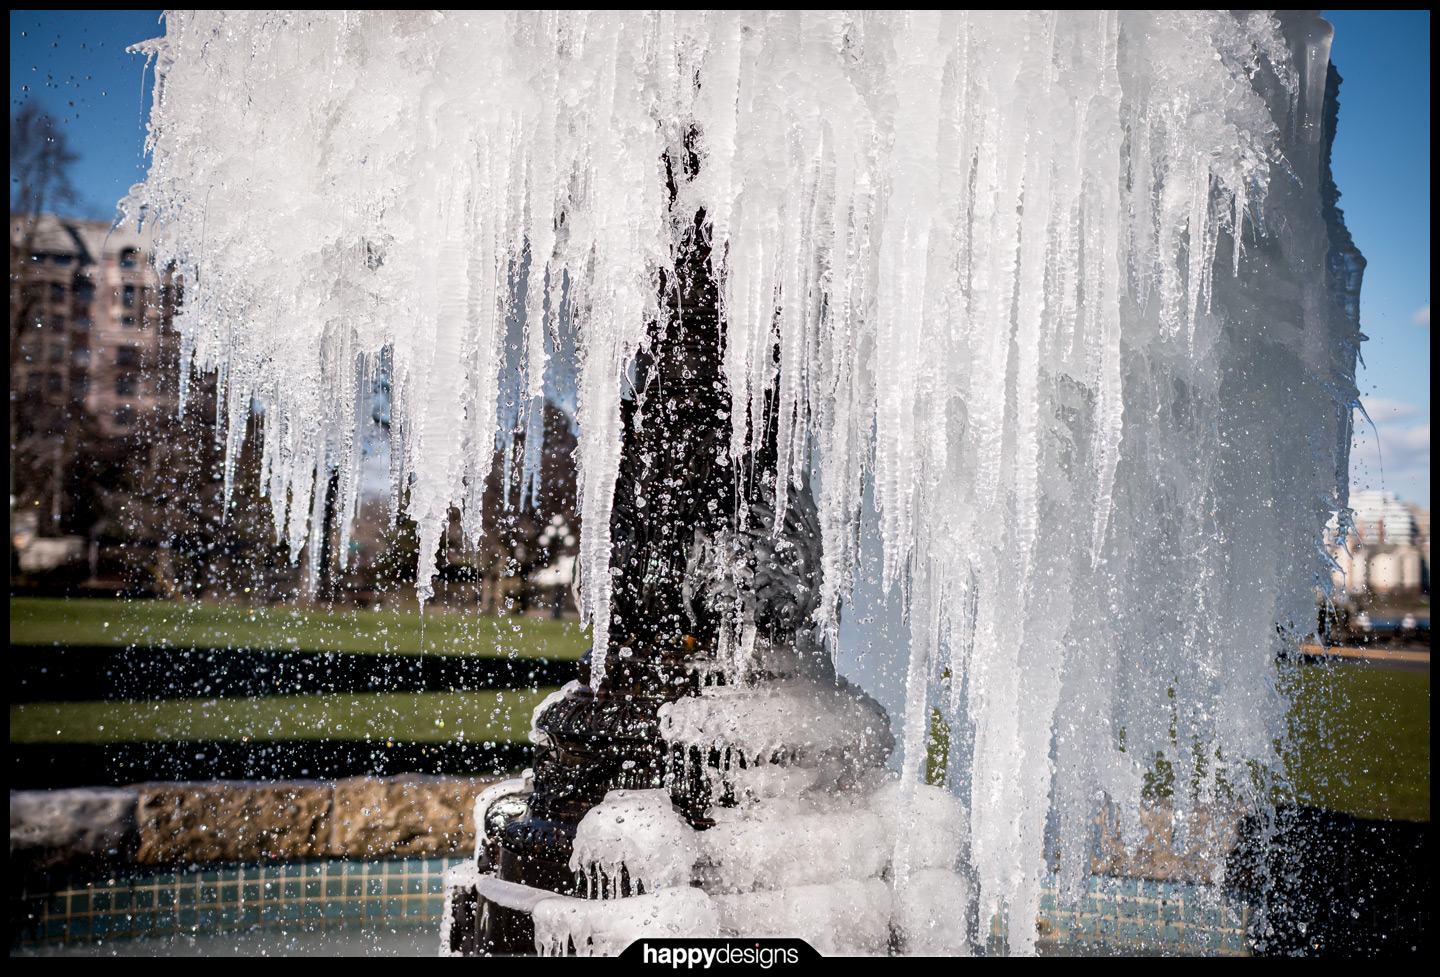 20140211 - frozen fountain-0002